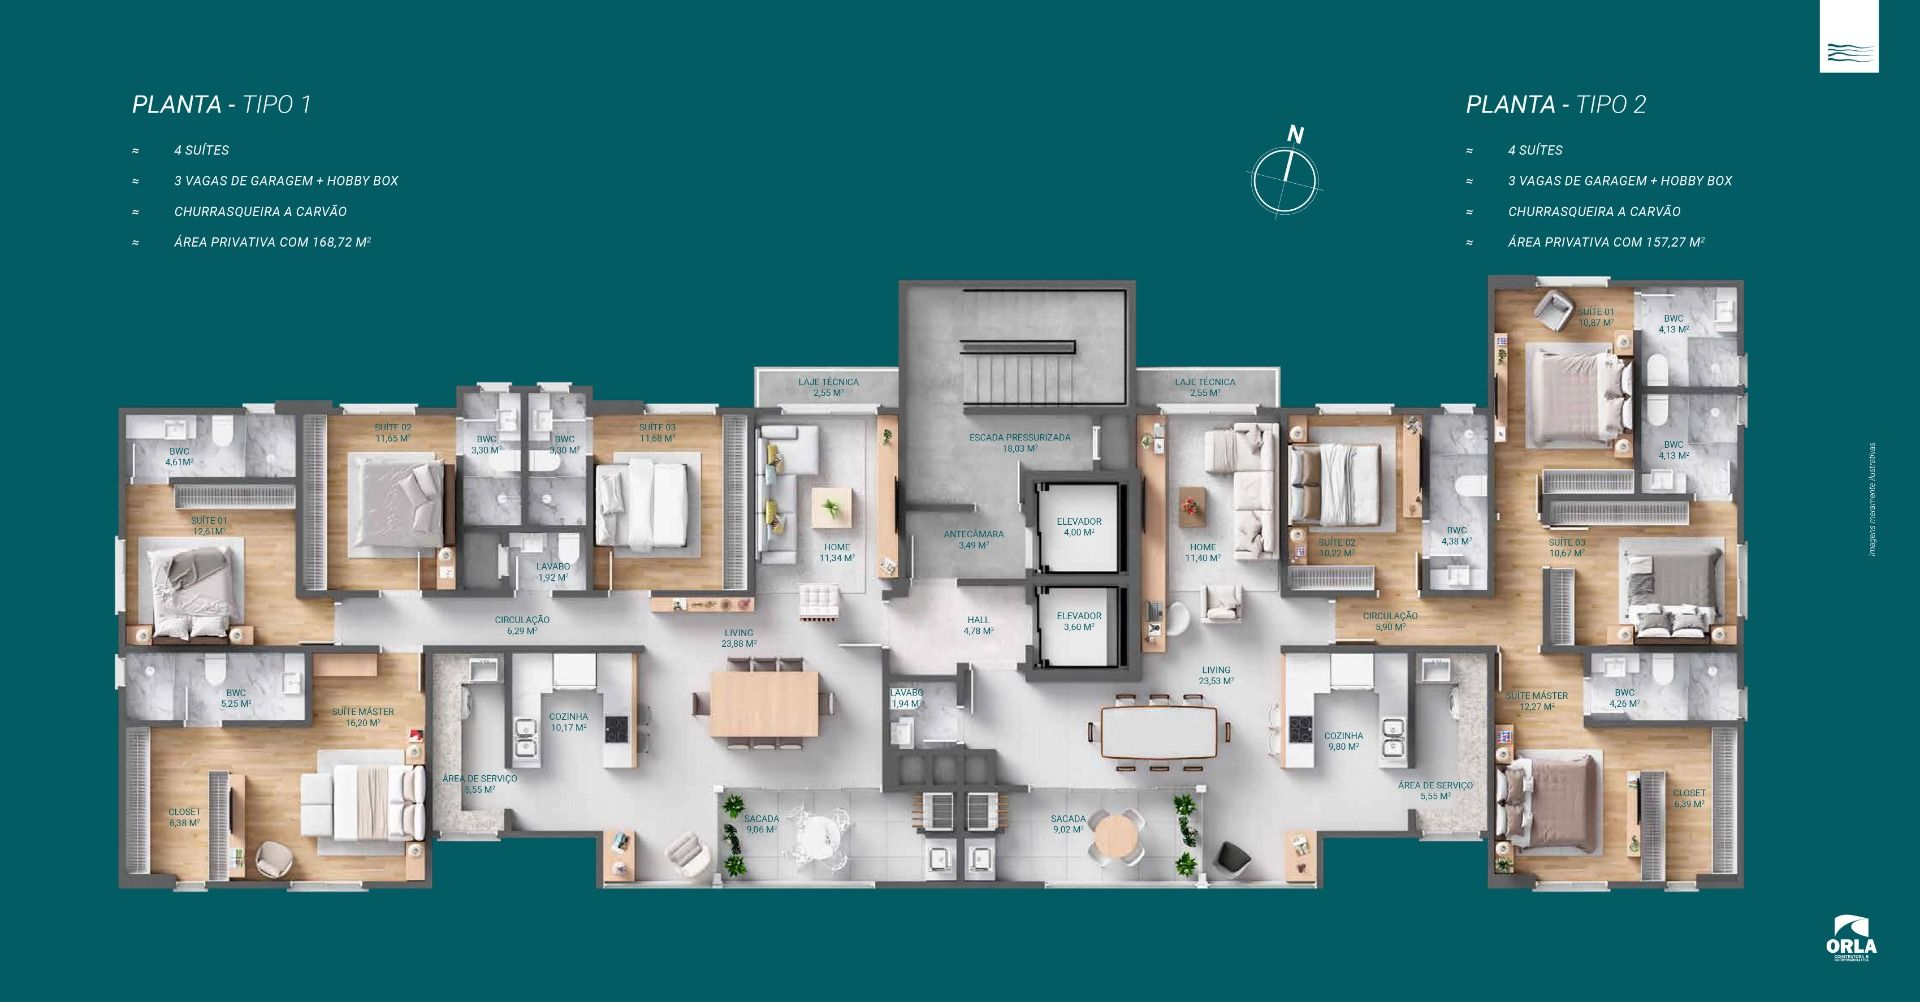 Planta do Las Brisas Residence. floorplan